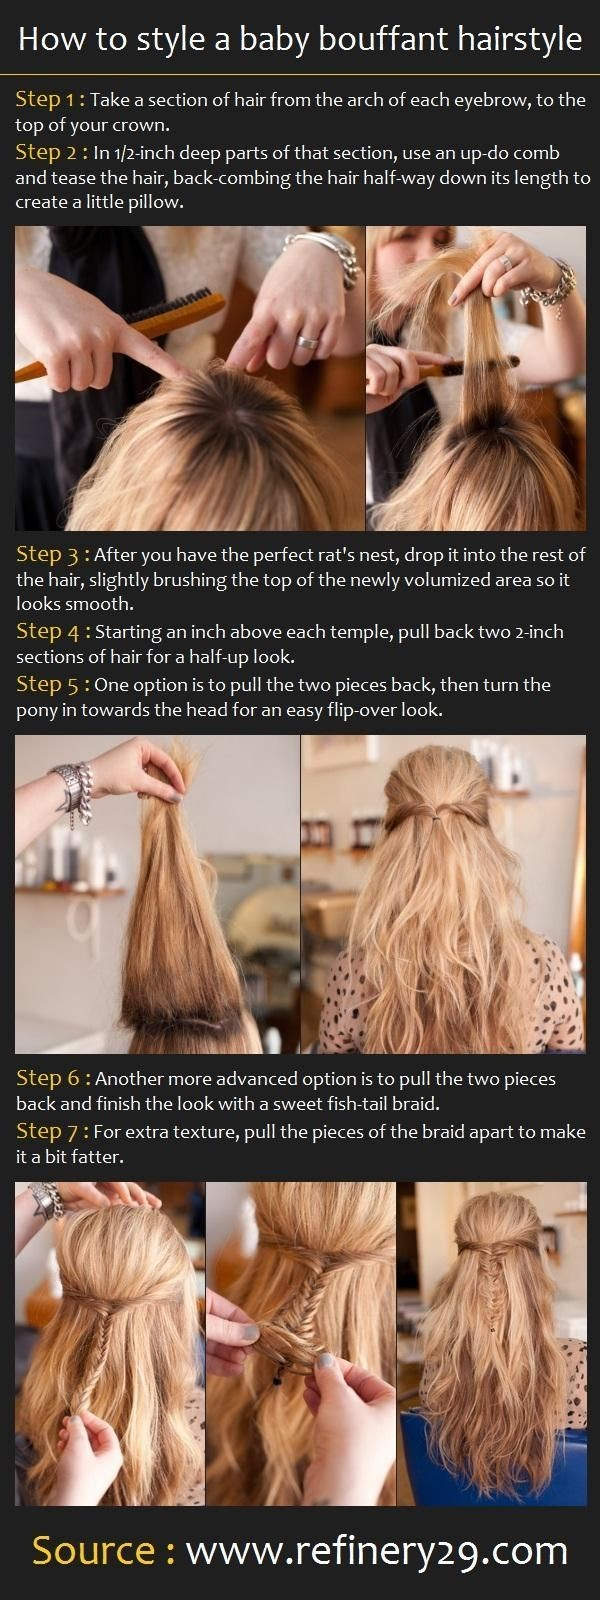 Cute Diy Hairstyles for School: Bouffant Hairstyle